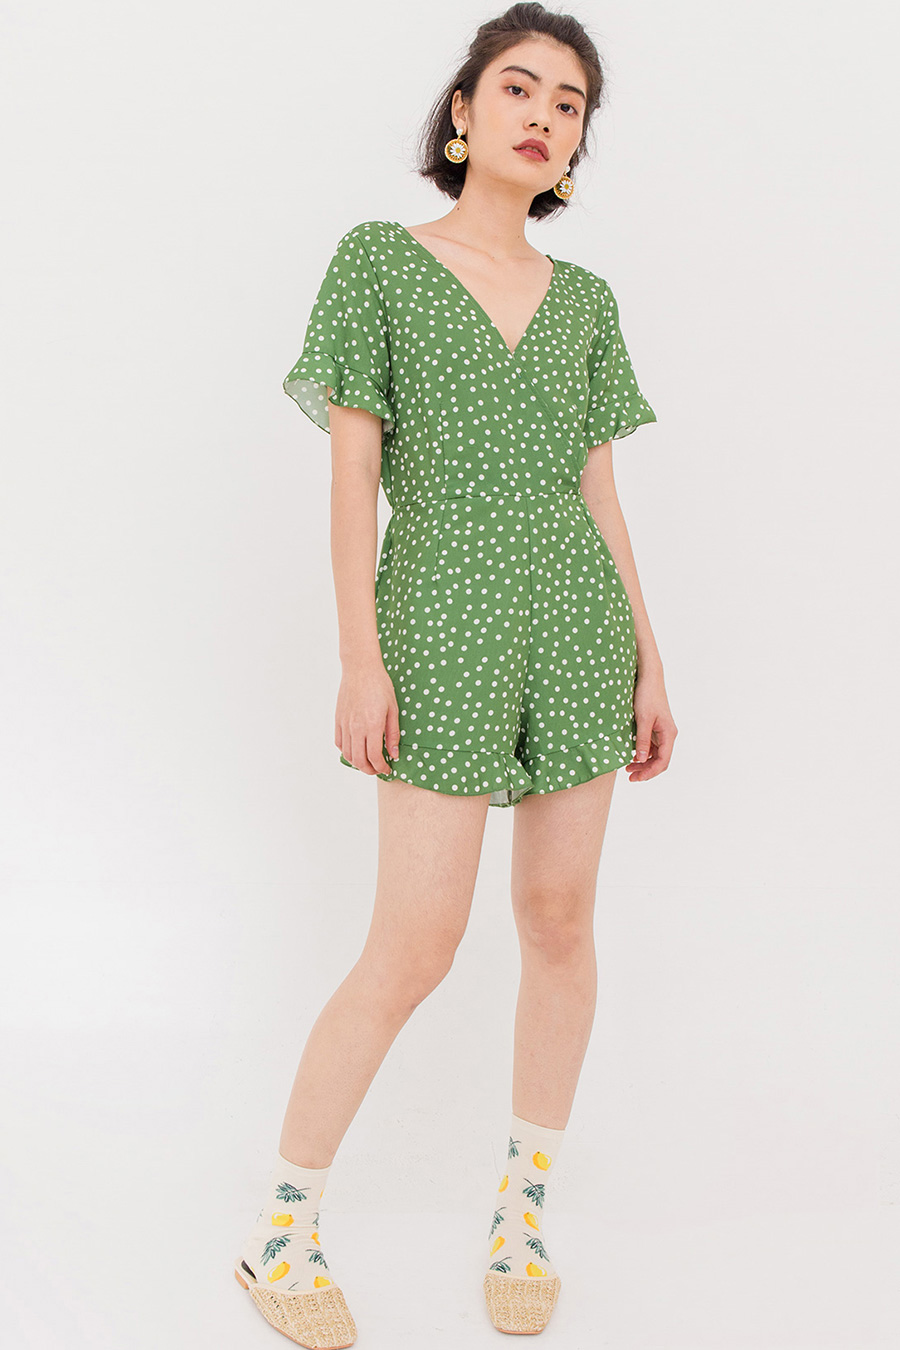 SELVA DOTTED PLAYSUIT - FERN GREEN